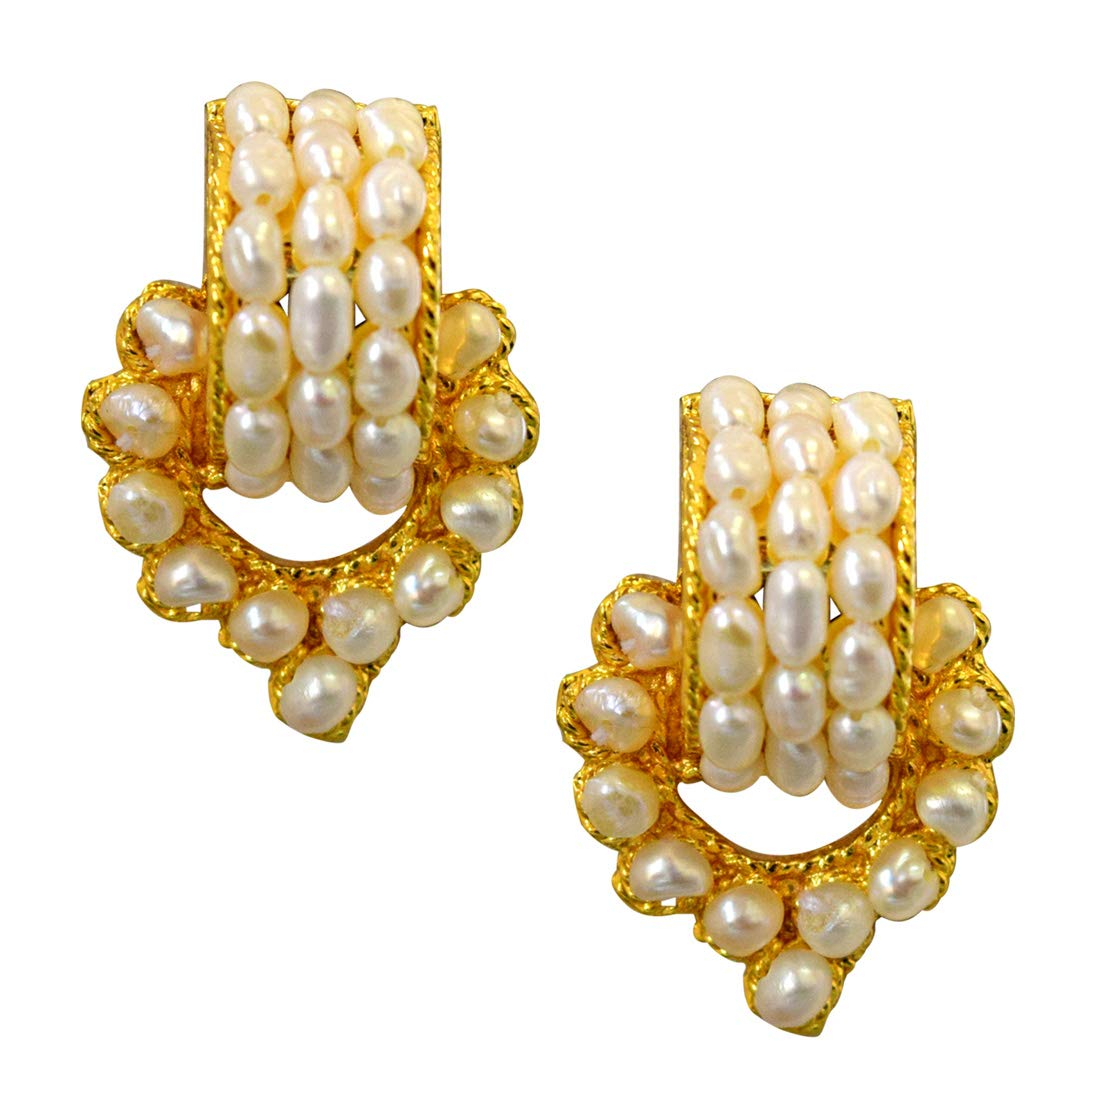 Geometric Magic - Real Freshwater Pearl & Gold Plated Geometrical Shaped Earring for Women (SE40)